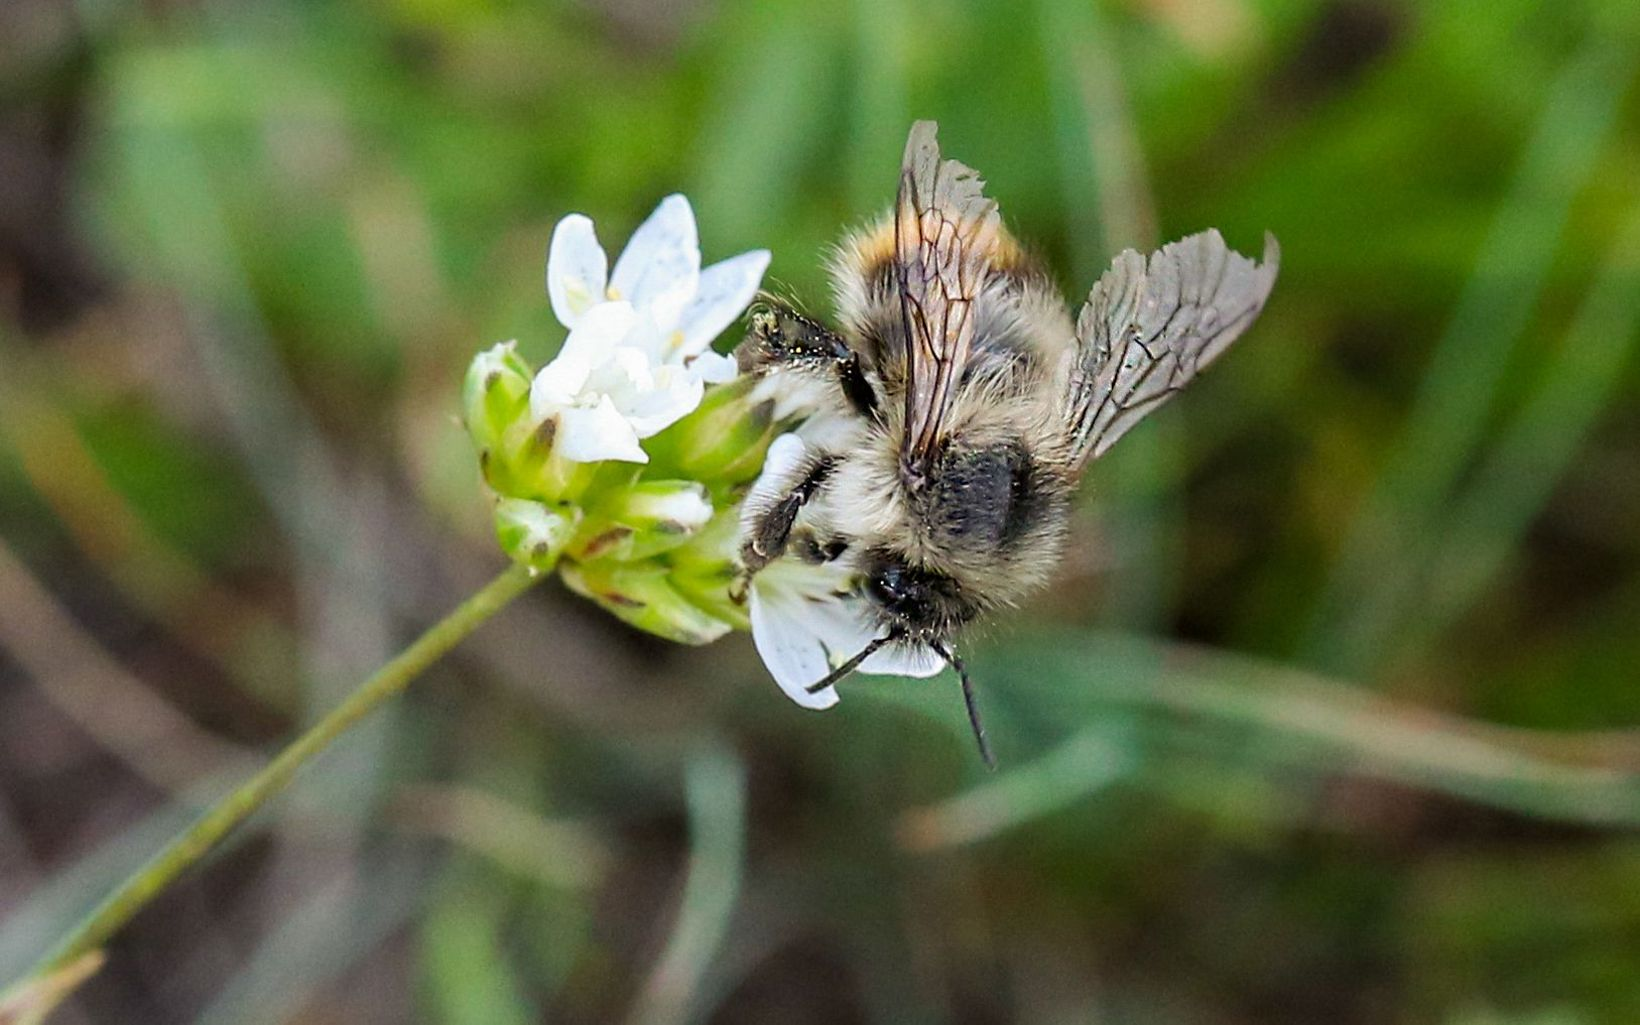 Bee getting pollen from white flower blossoms.